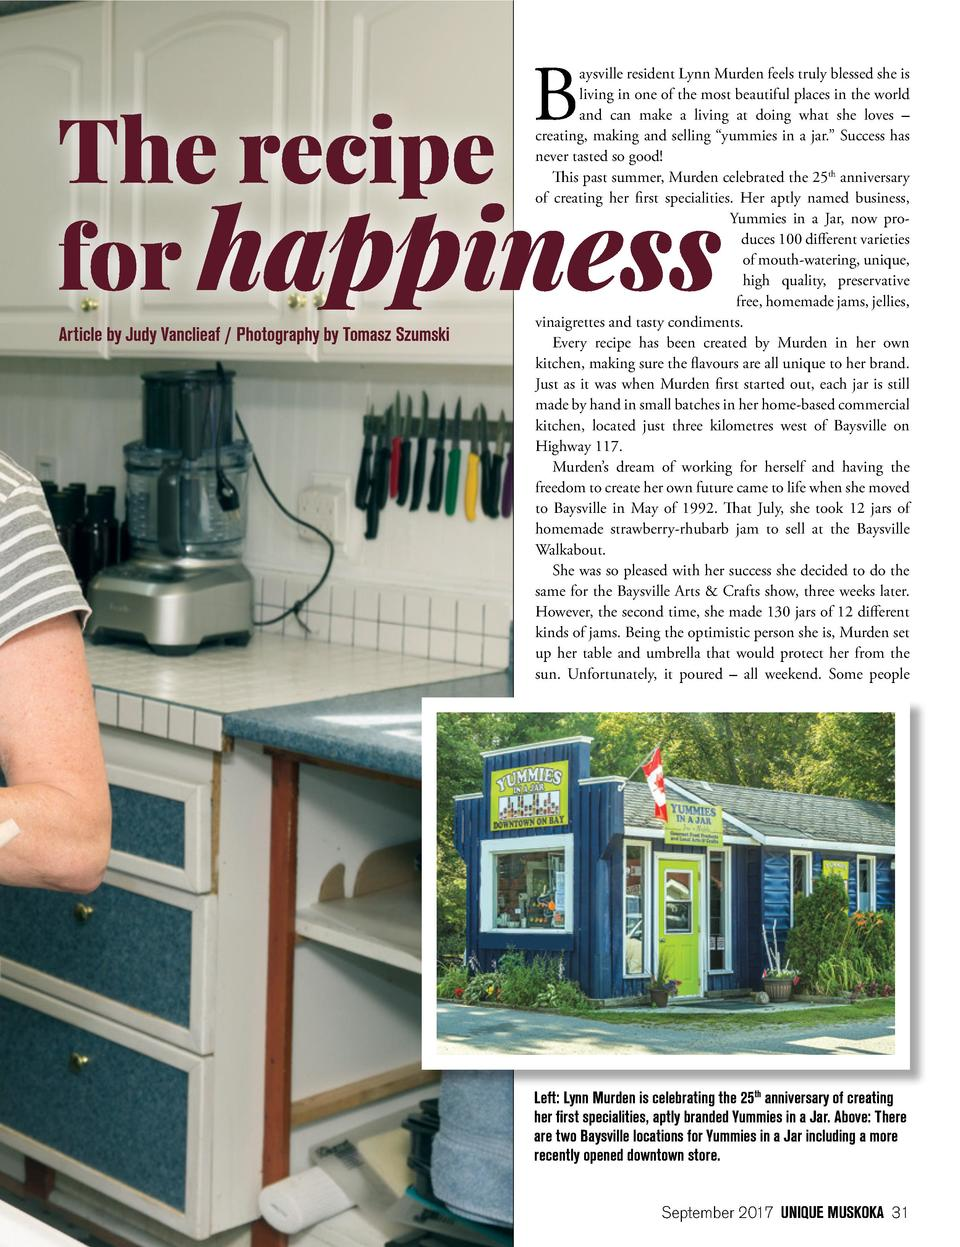 B Article by Judy Vanclieaf   Photography by Tomasz Szumski  aysville resident Lynn Murden feels truly blessed she is livi...